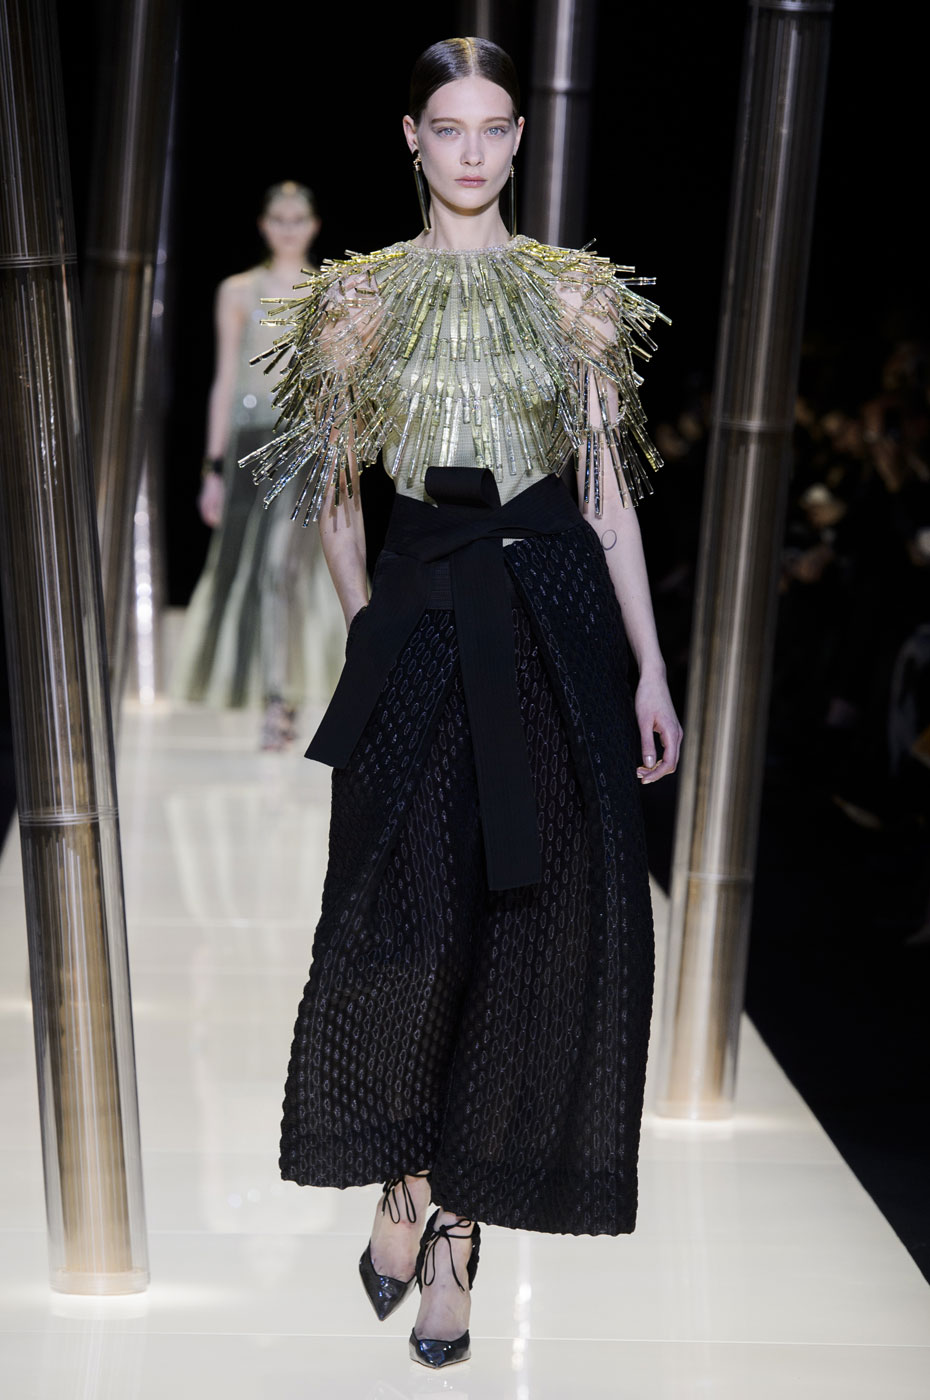 Giorgio-armani-Prive-fashion-runway-show-haute-couture-paris-spring-2015-the-impression-055